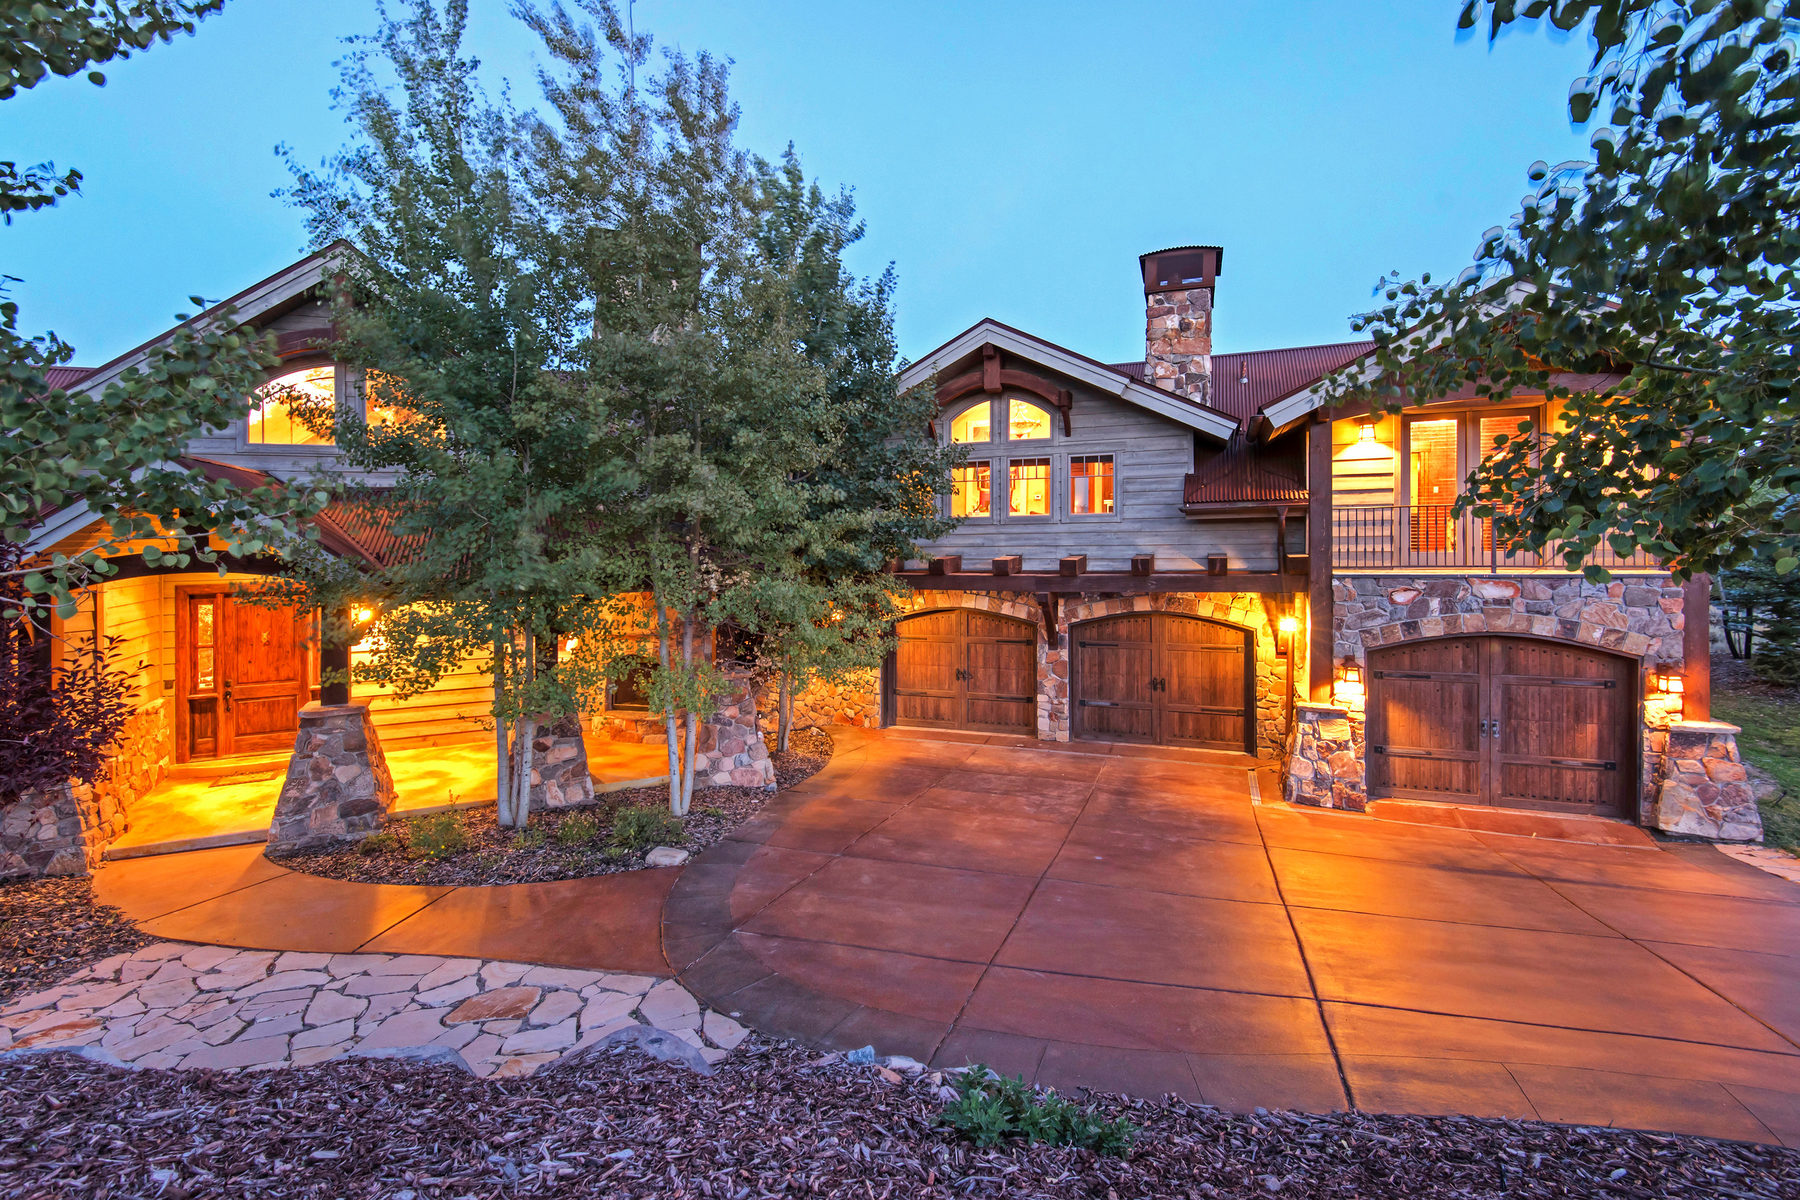 Moradia para Venda às Traditional Elegance In Promontory's Most Exclusive Neighborhood 8450 N Sunrise Lp Park City, Utah, 84098 Estados Unidos